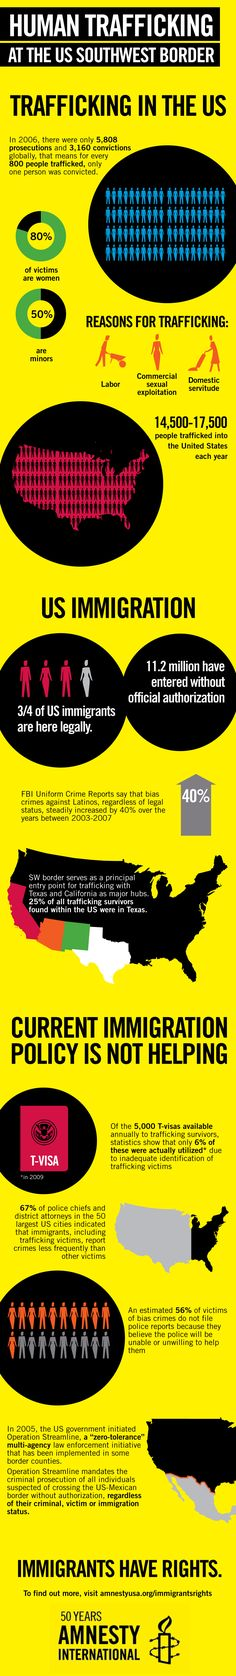 14,500 - 17,500 people are trafficked into the US each year. http://www.amnestyusa.org/research/reports/usa-in-hostile-terrain-human-rights-violations-in-immigration-enforcement-in-the-us-southwest